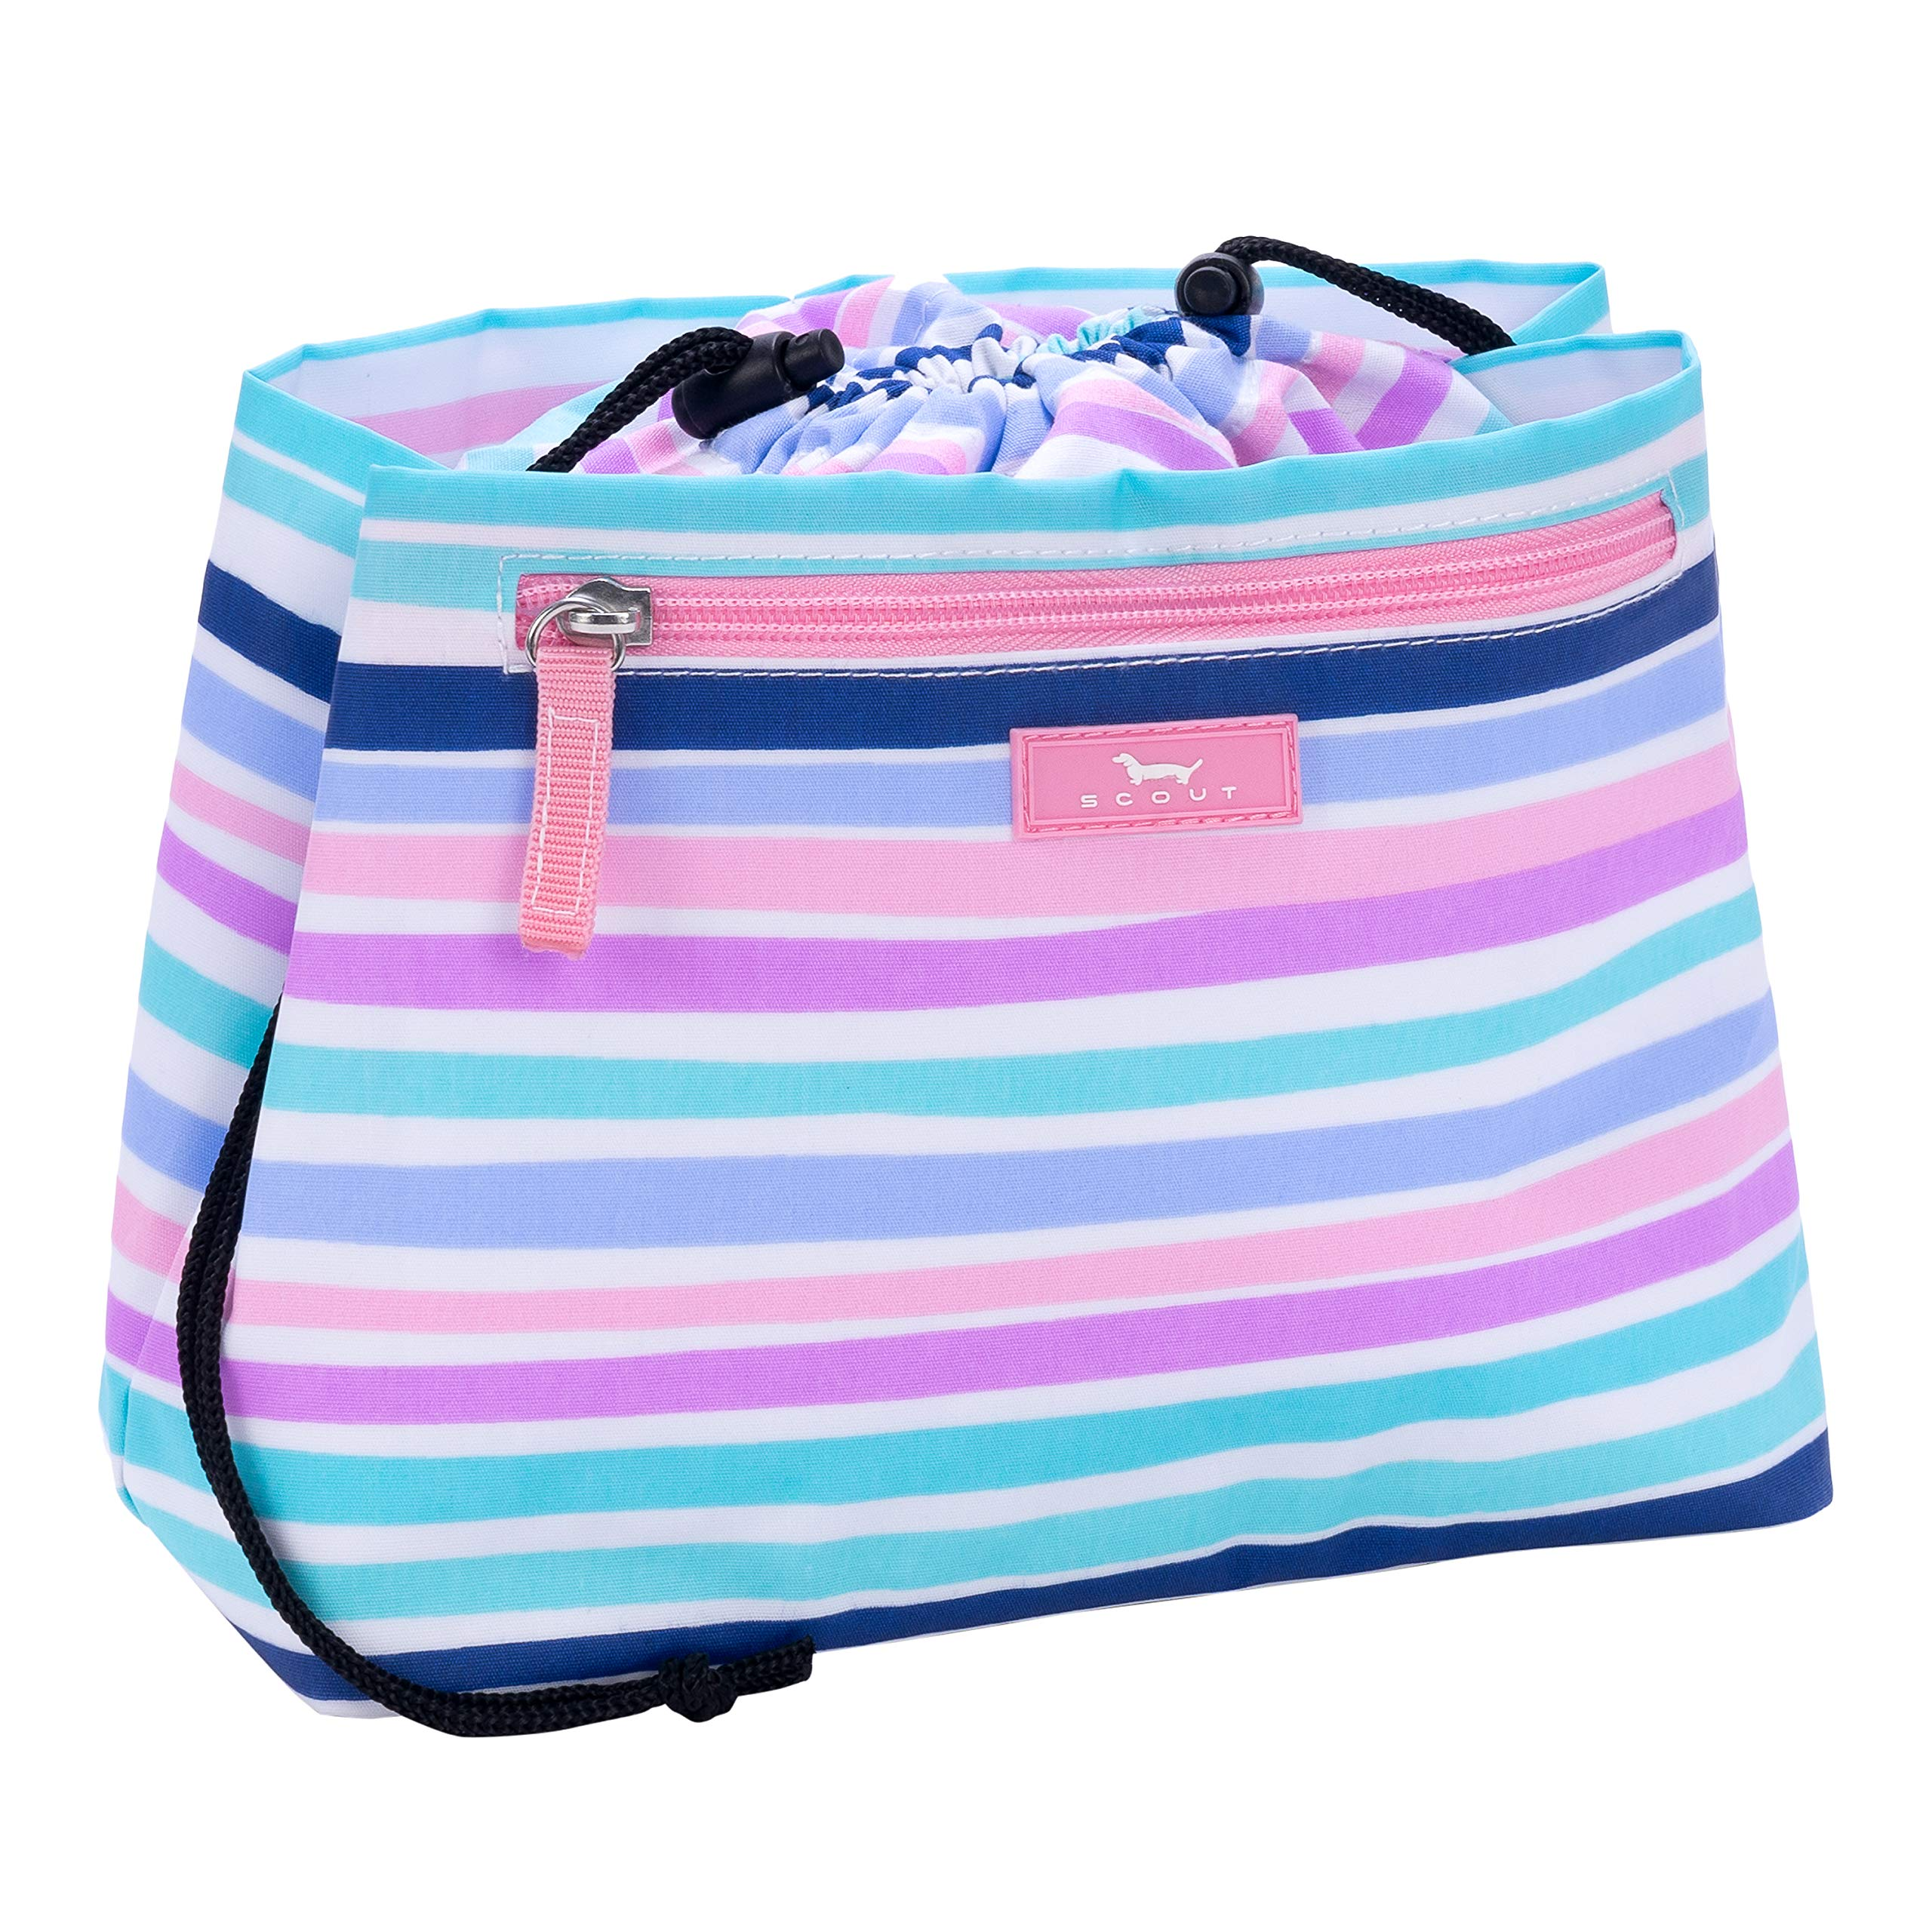 SCOUT Glam Squad Makeup & Cosmetic Bag, Cinch-Top Closure, 4 Open Pockets, Water Resistant, Big Little Lines